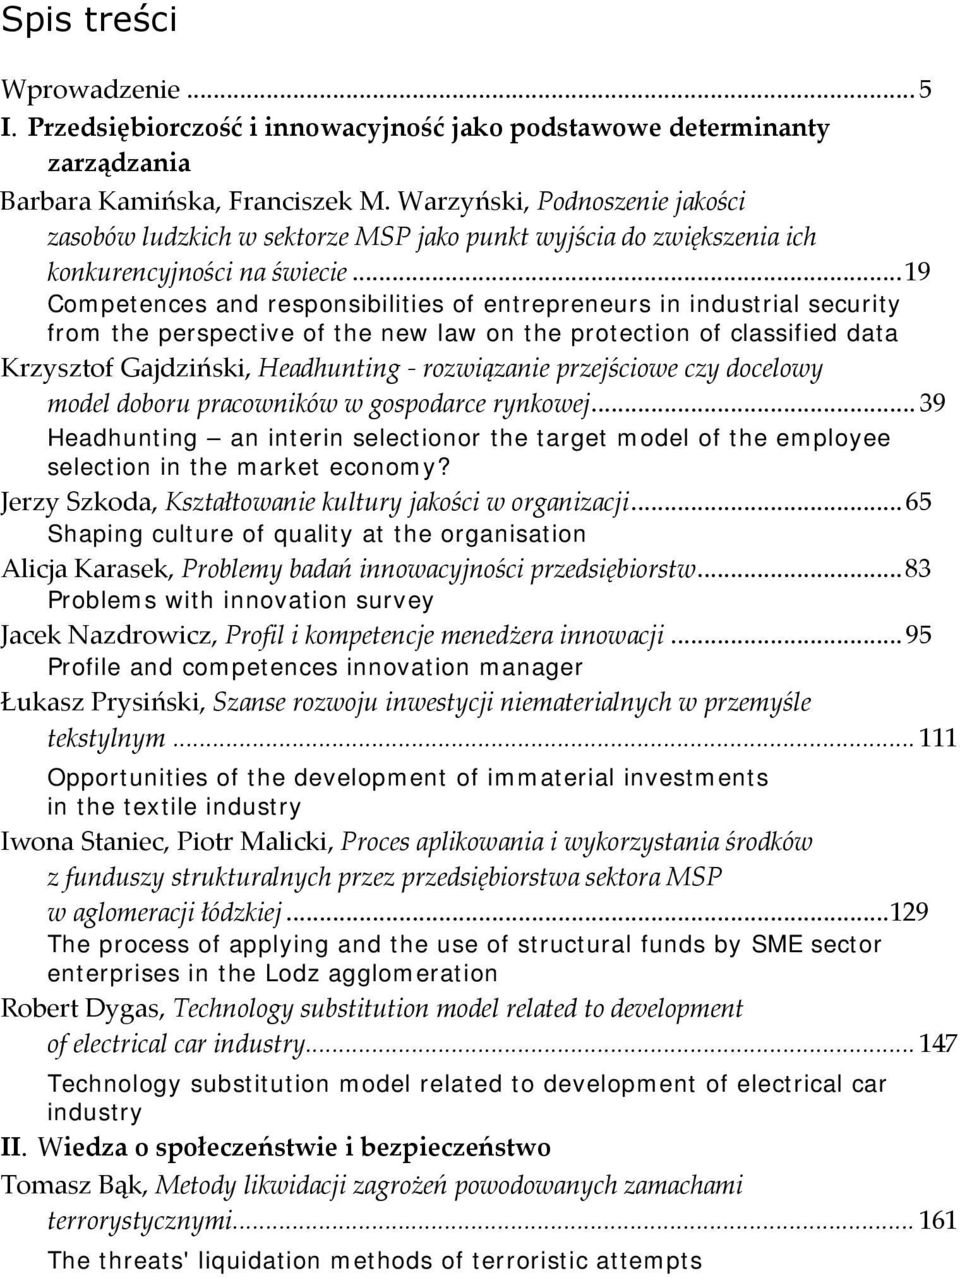 ..19 Competences and responsibilities of entrepreneurs in industrial security from the perspective of the new law on the protection of classified data Krzysztof Gajdziński, Headhunting rozwiązanie